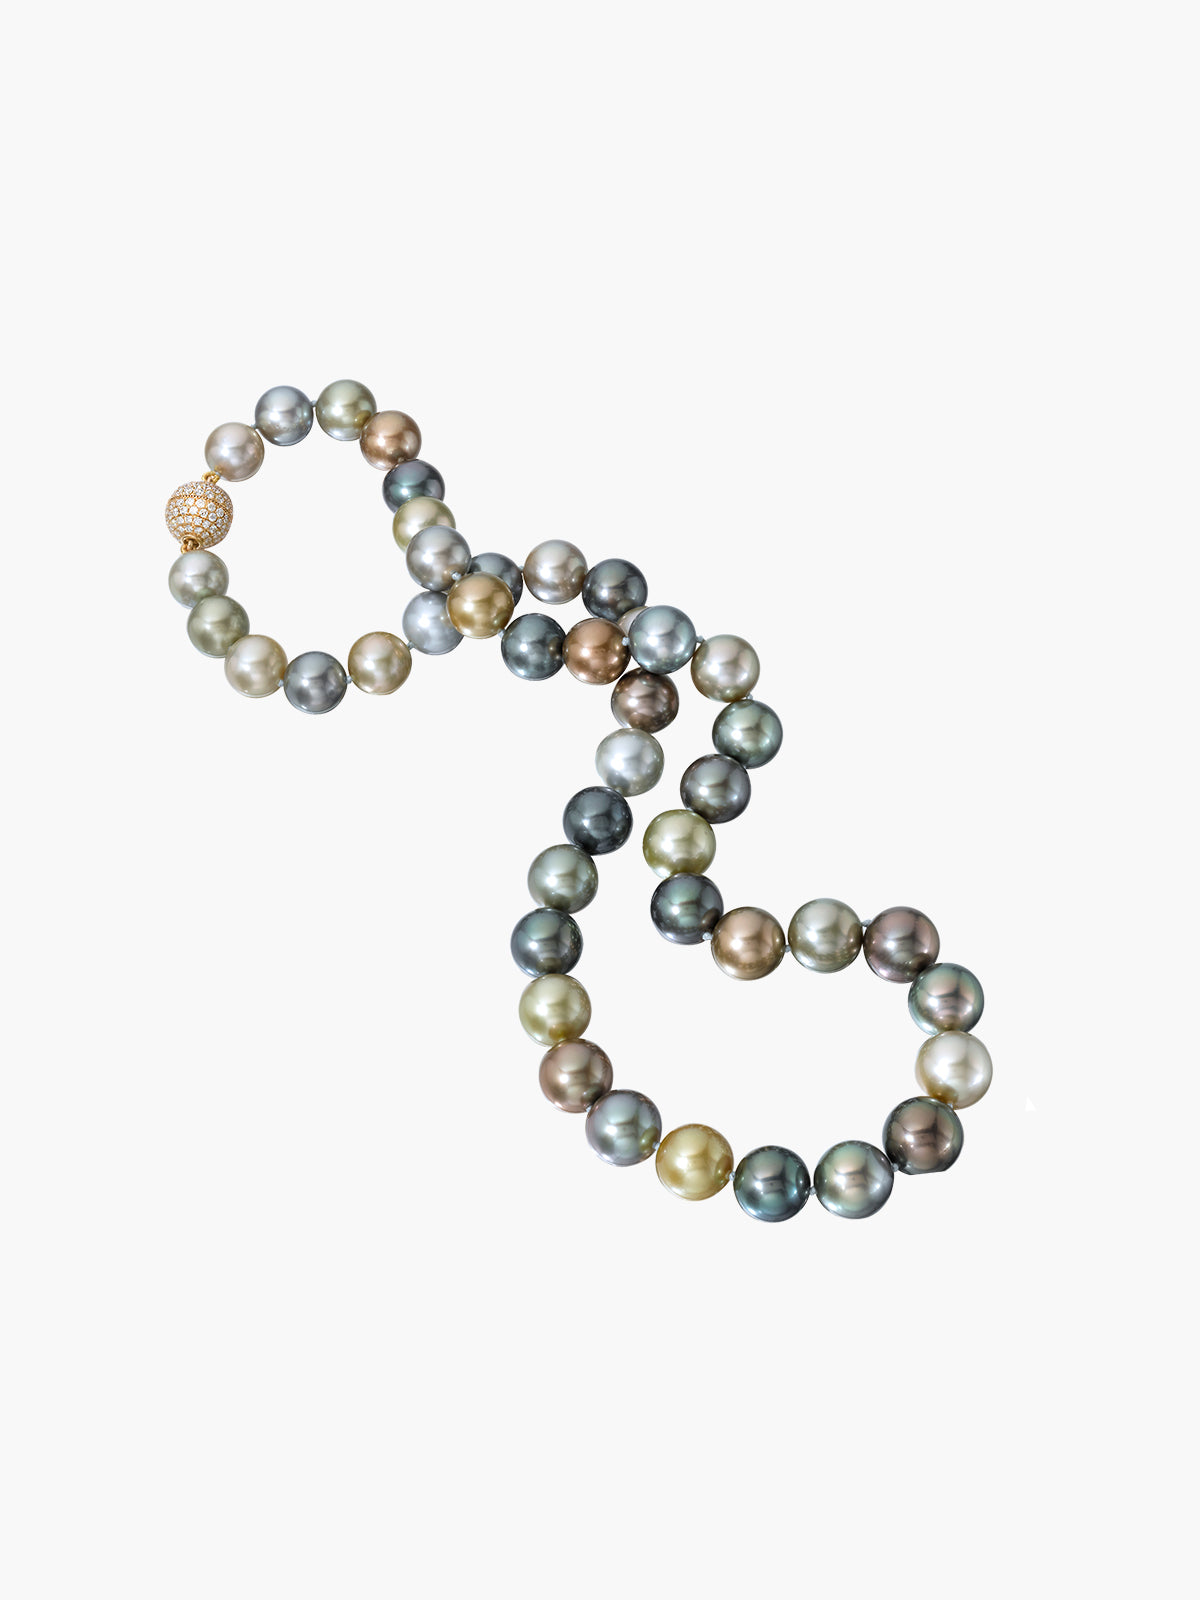 Round Fijian Pearl Necklace